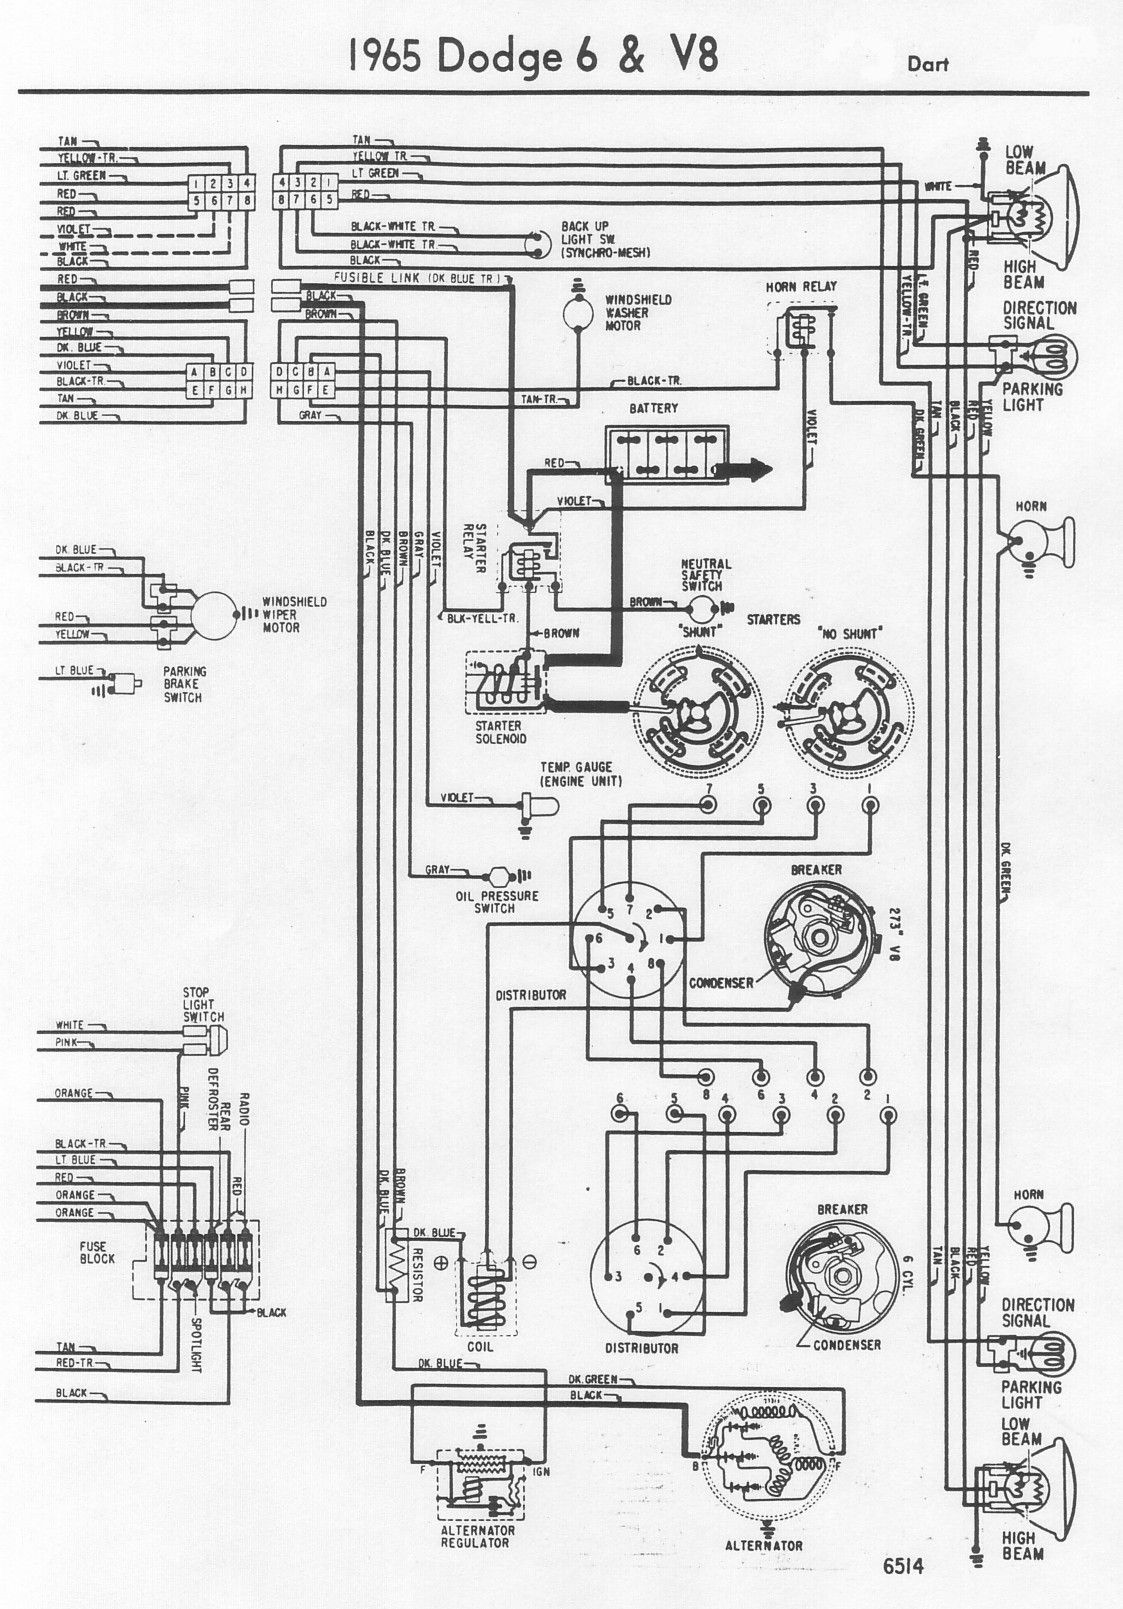 1967 Dodge Dart Gt Wiring Diagram Schematics Diagrams Rambler Rebel 65 Front Mopar Muscle Pinterest Rh Com Dash For Charger 1974